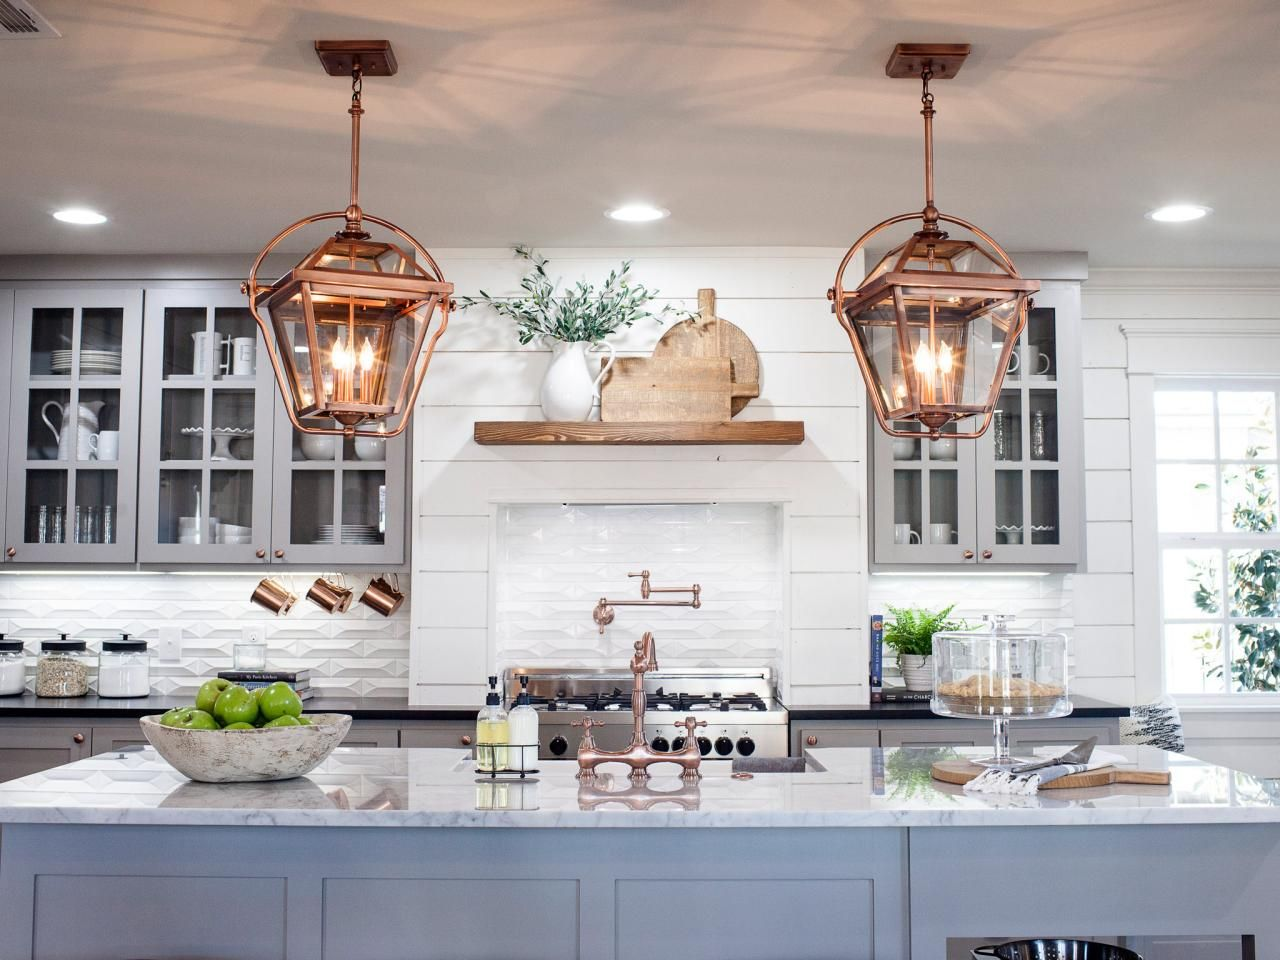 Fixer upper double kitchen island - As Season 3 Of Hgtv S Fixer Upper Draws To Its Finale Chip And Joanna Gaines